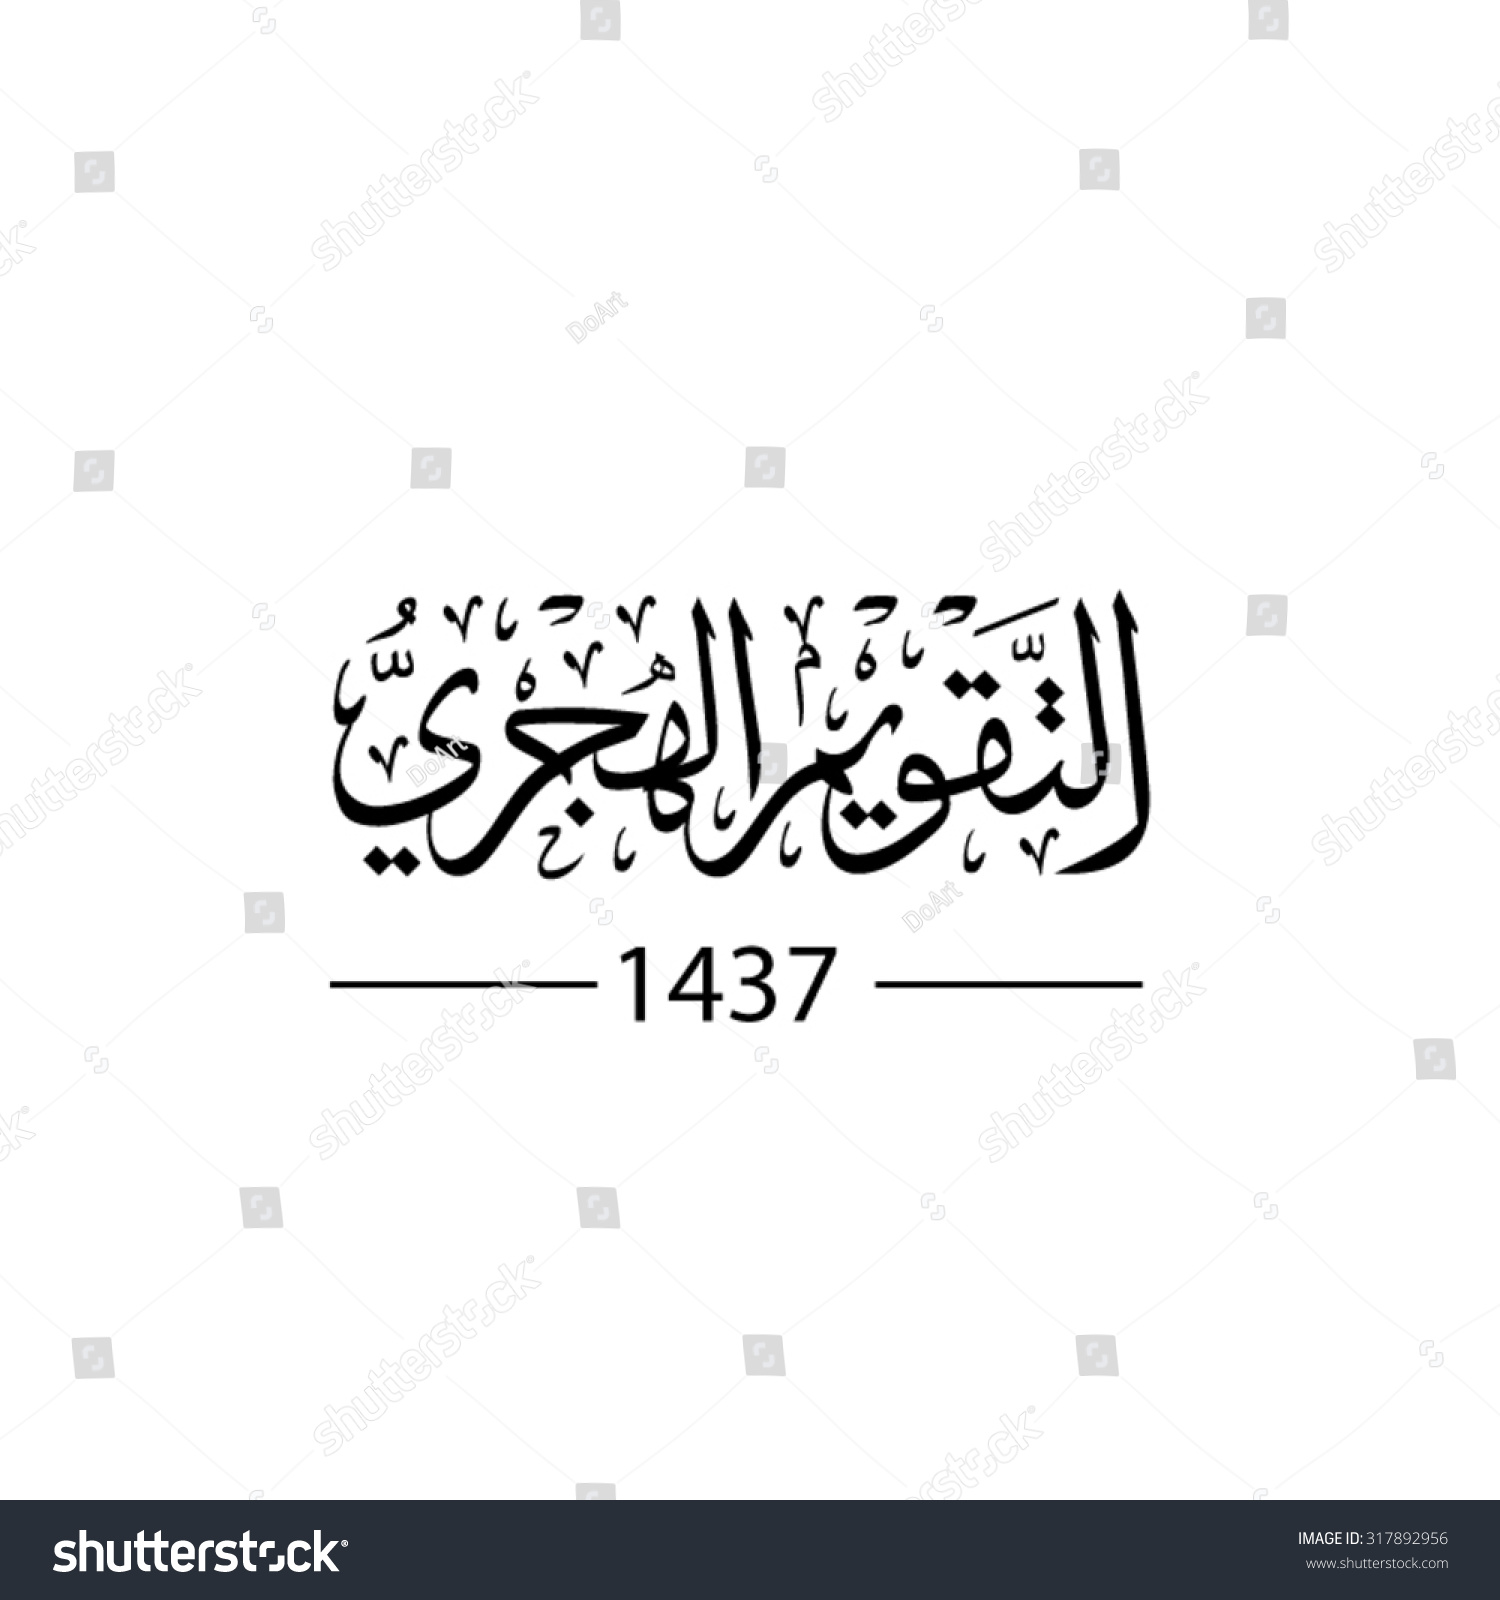 Hijri Calendar In Arabic Thuluth calligraphy can be the cover of Hijri Calendar Or Arabic calendar even the islamic calndar